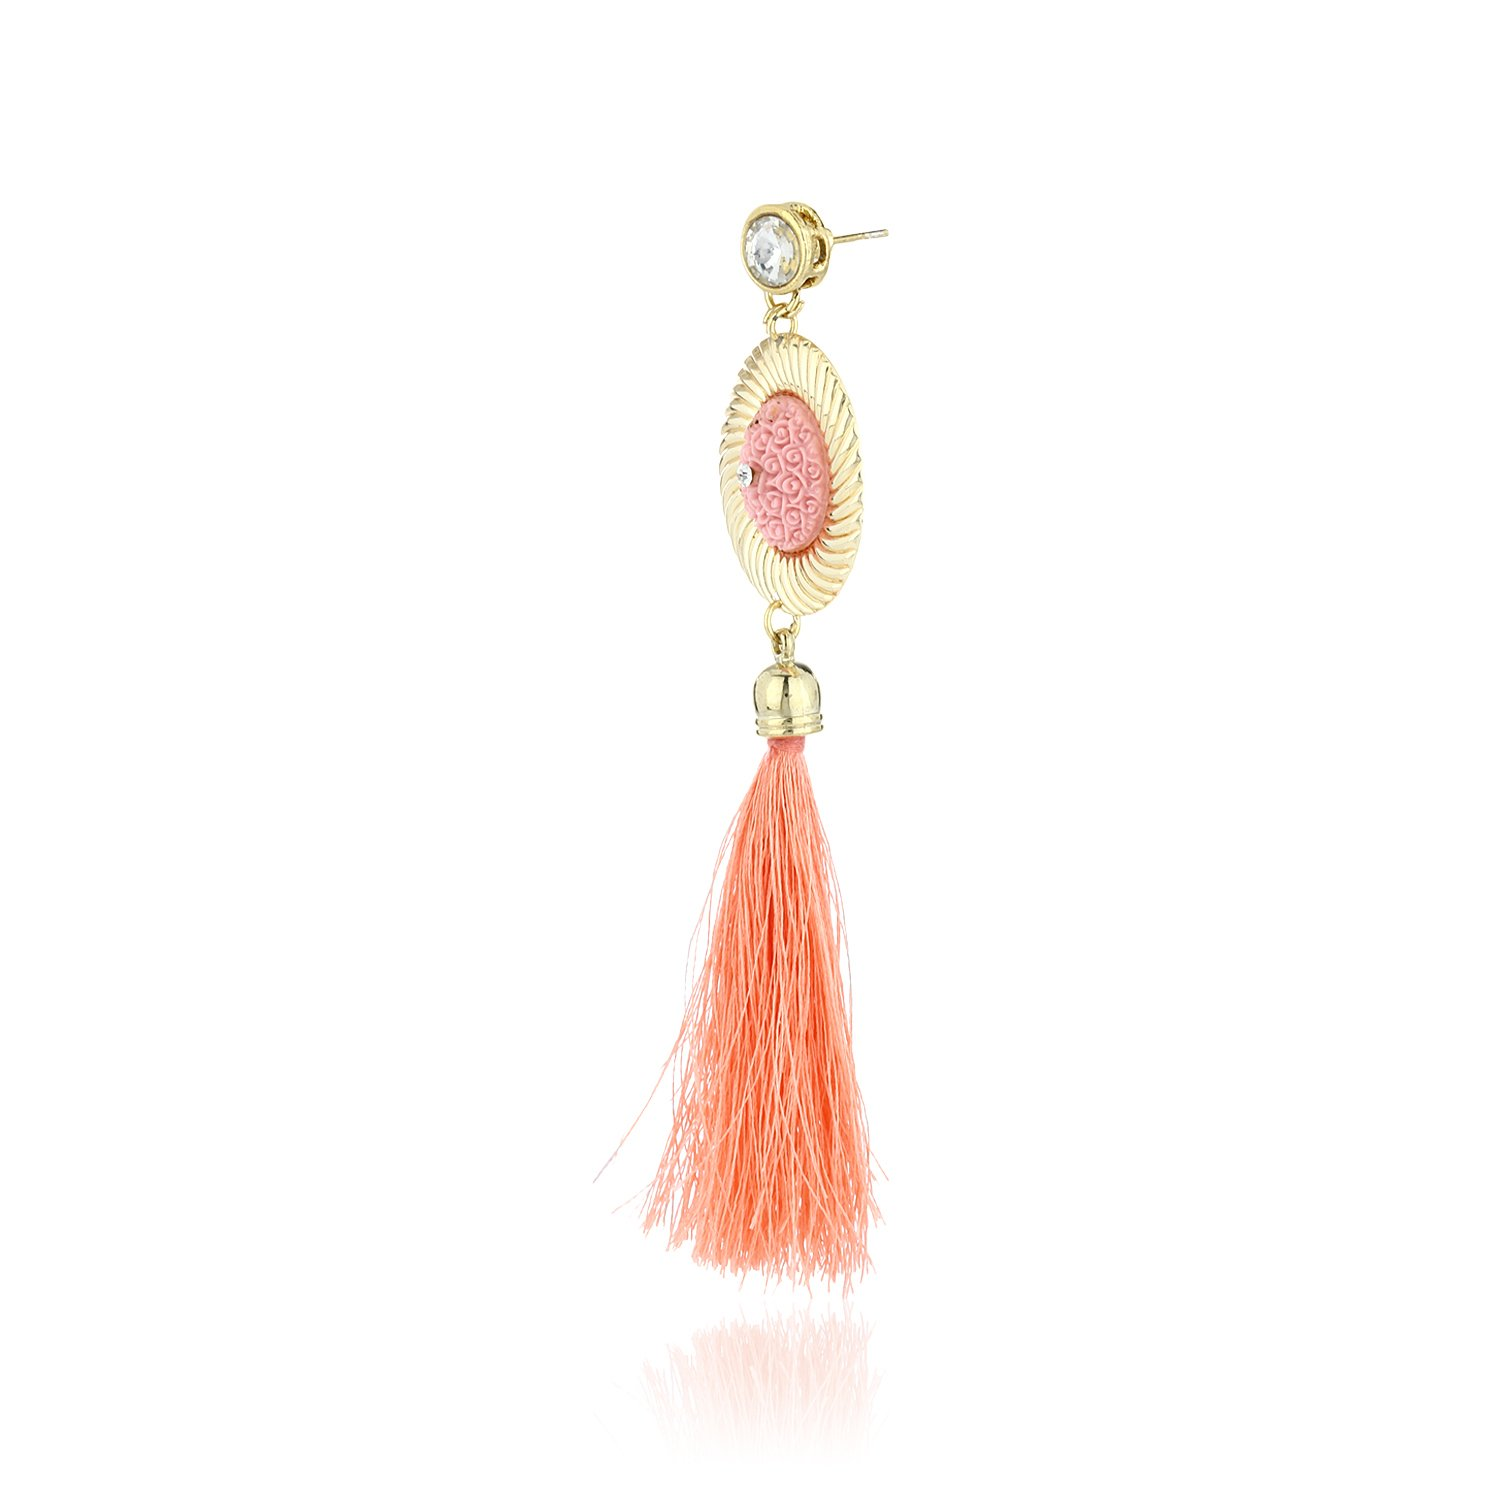 Fasherati Peach Floral Top And Long Silk Tassel Earrings For Women:  Amazon.co.uk: Jewellery